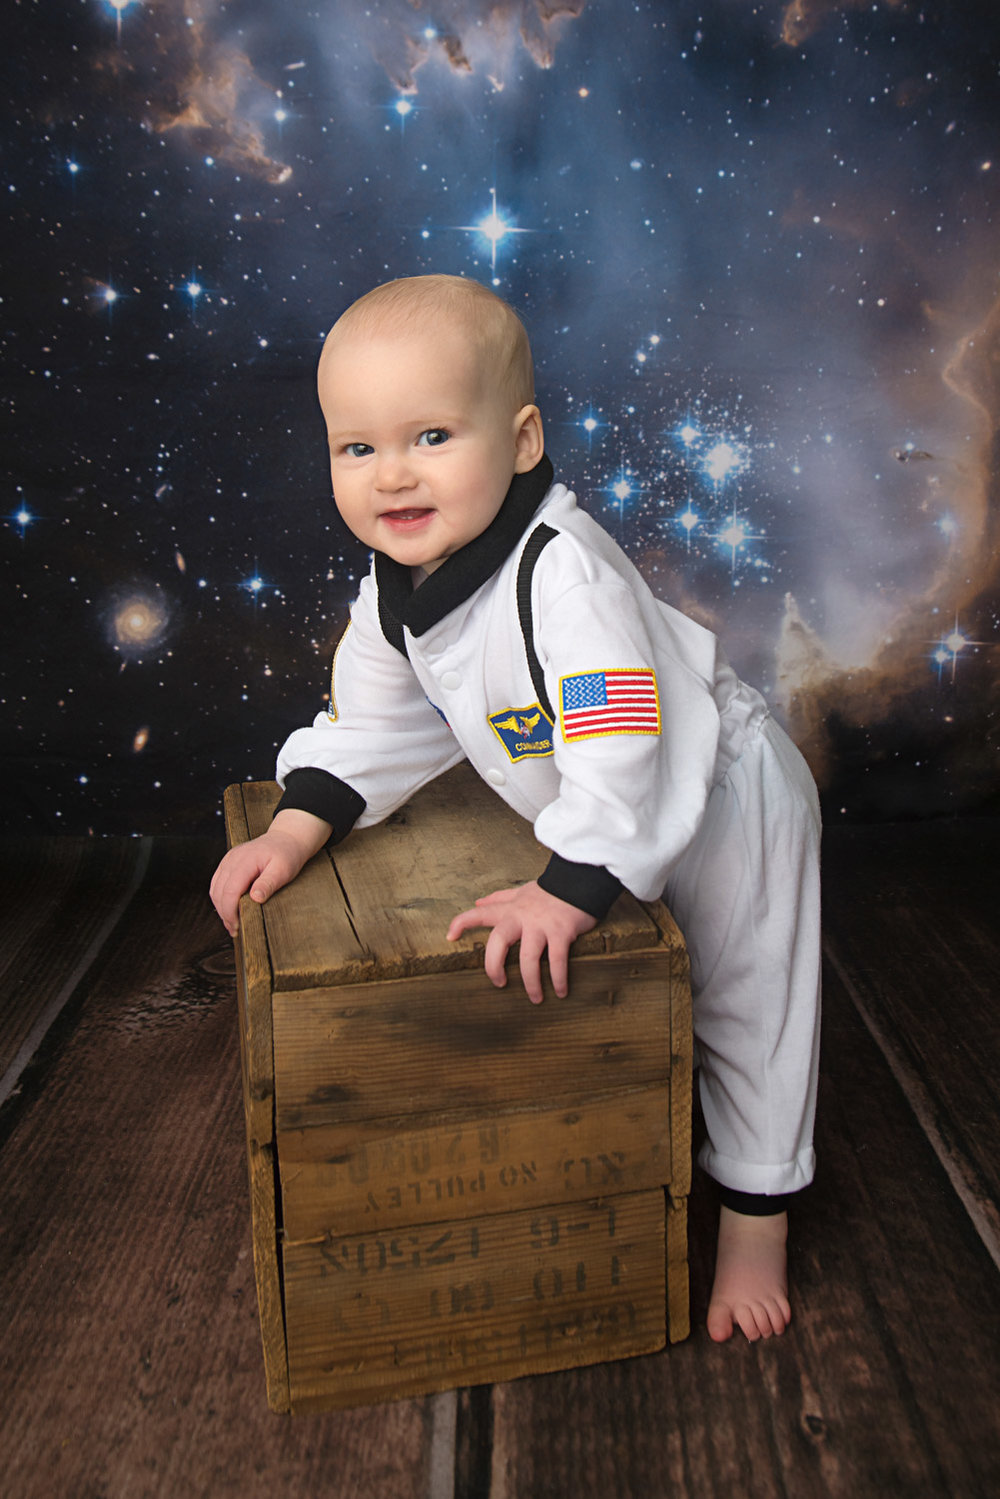 st-louis-baby-photography-studio-9-month-girl-in-nasa-suit-on-galaxy-backdrop.jpg